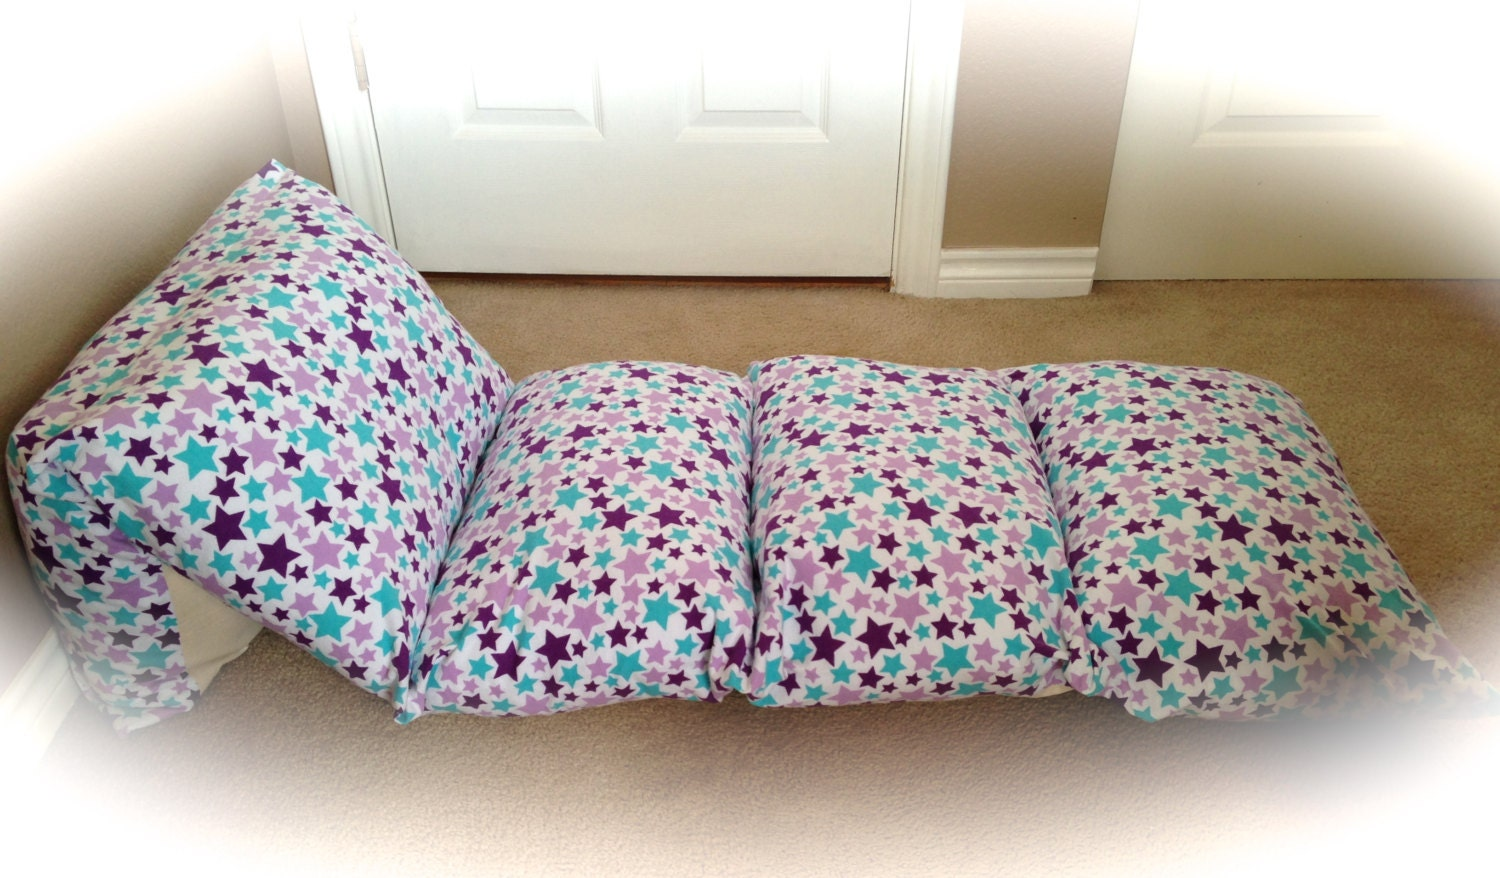 Kids Pillow Beds Super Fun And Super Comfy Roll One Out For